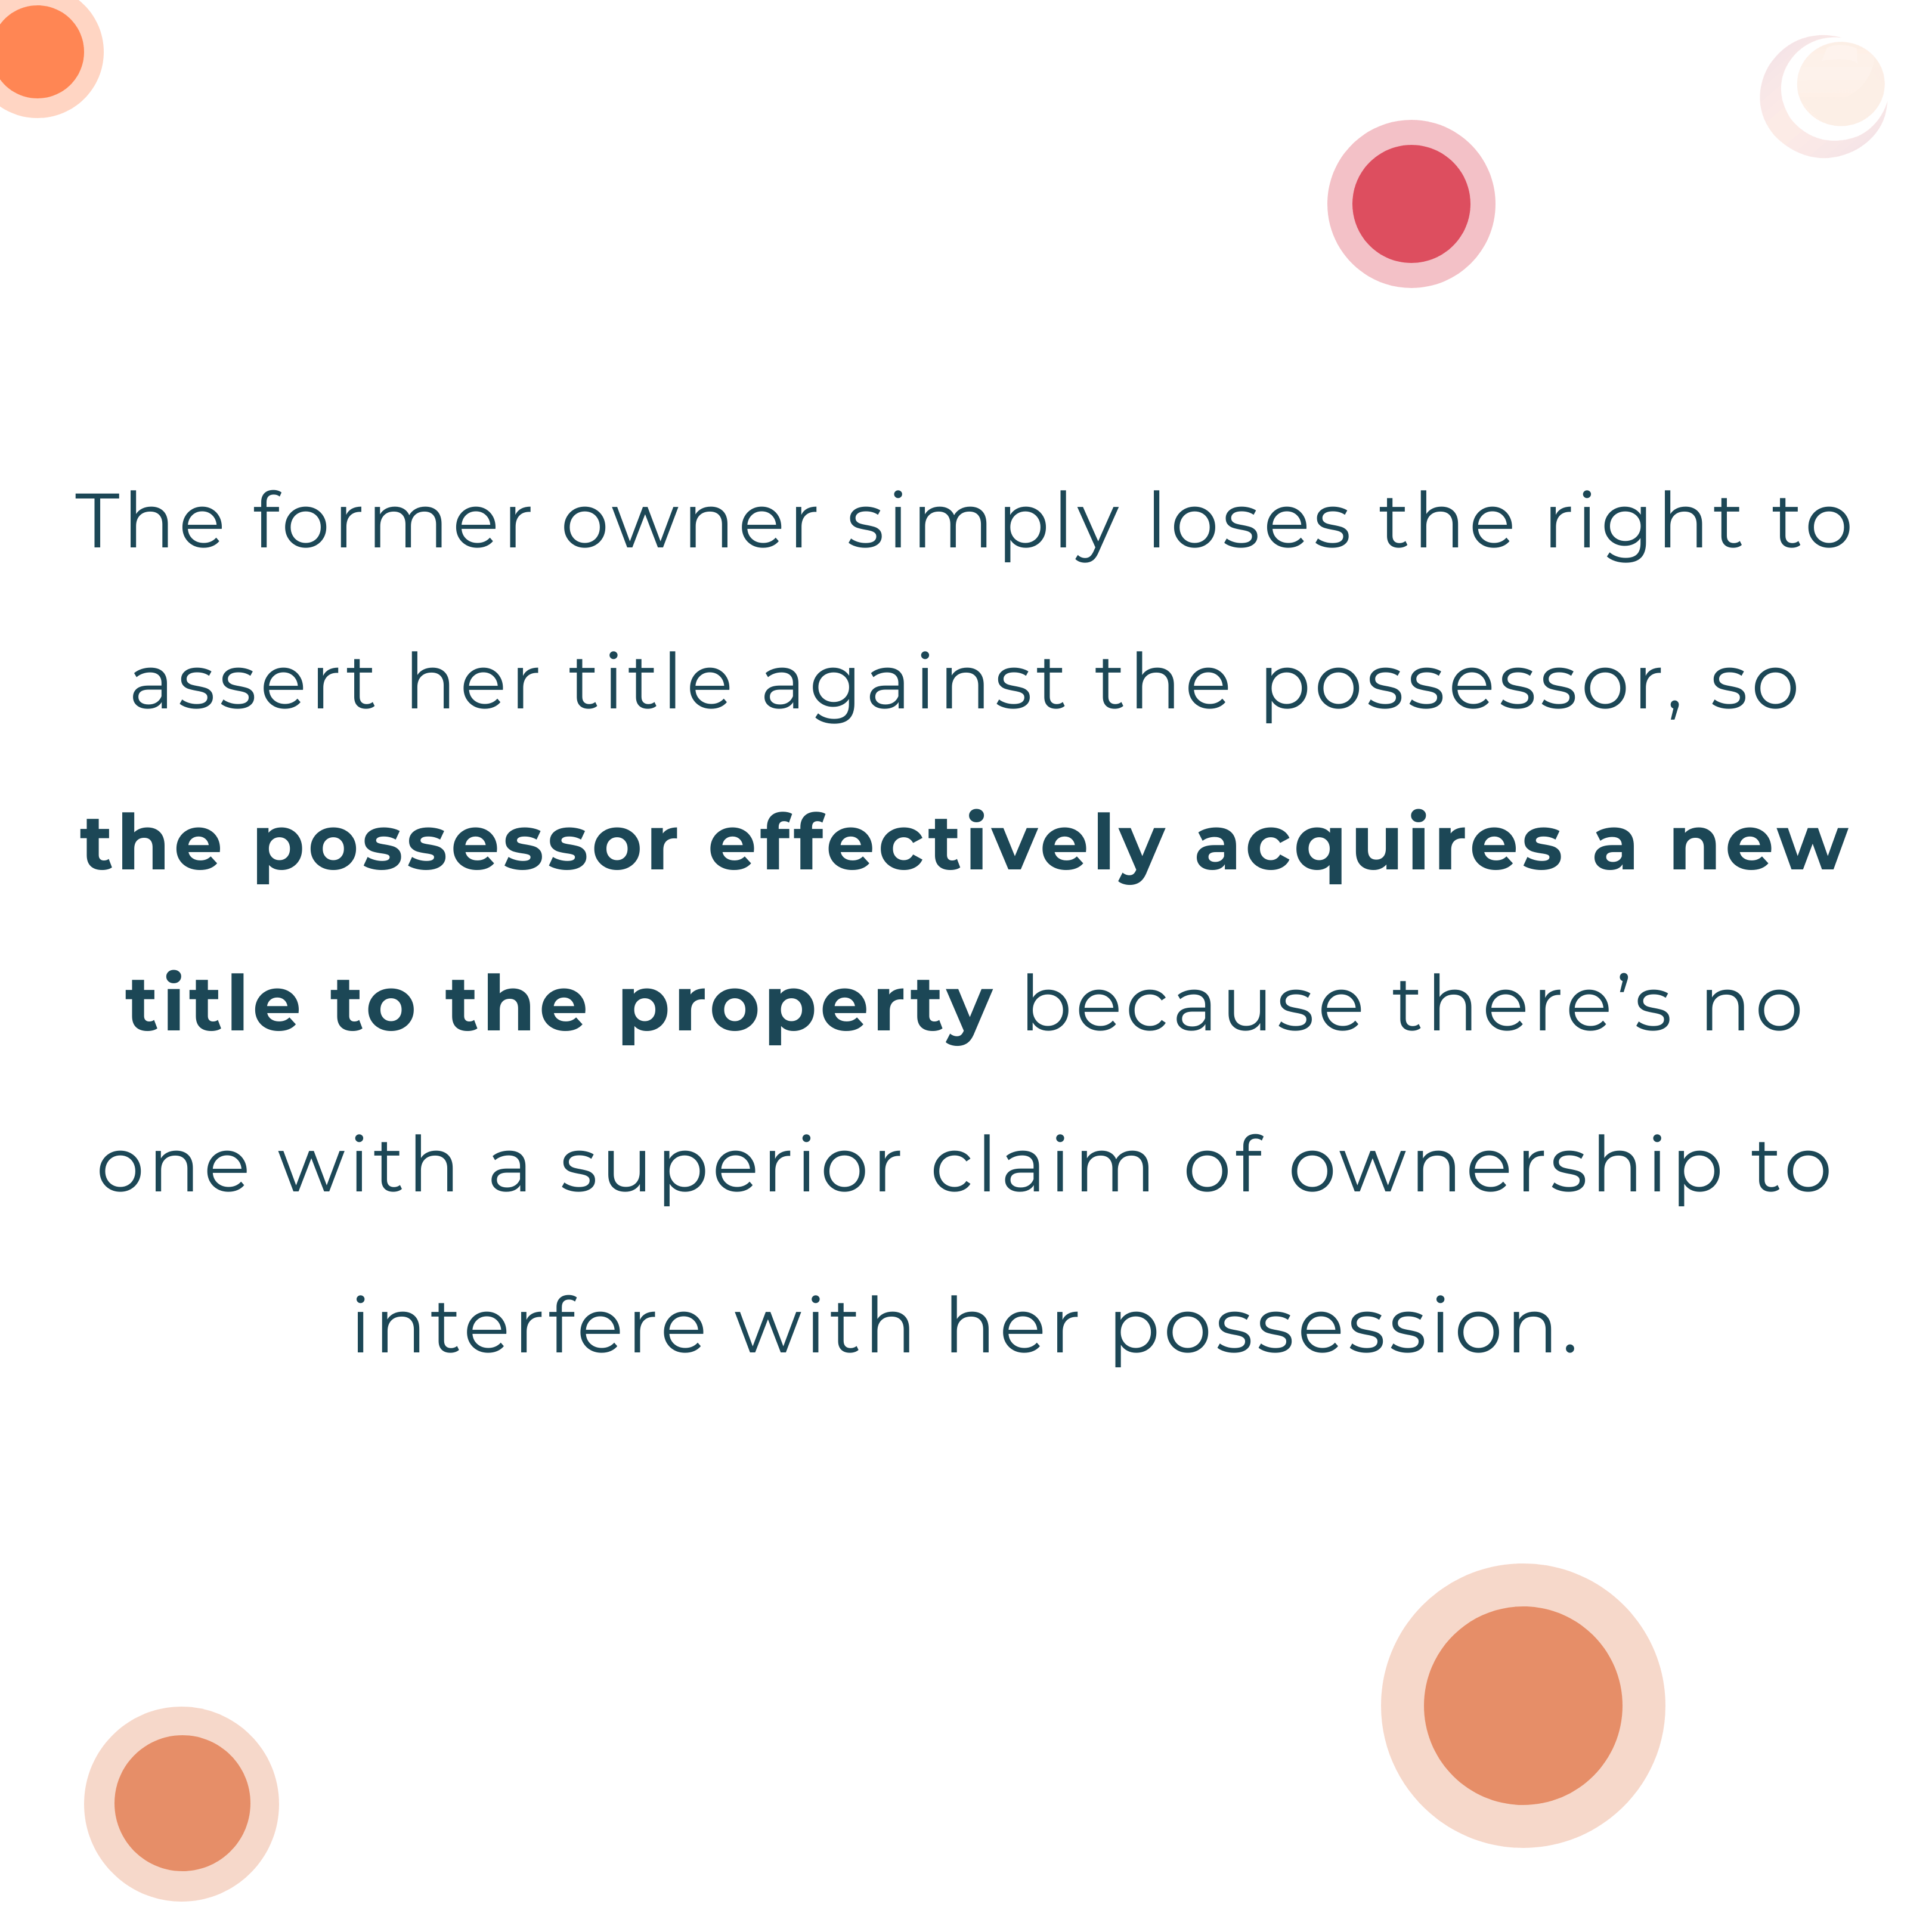 acquire title to a property you don't own